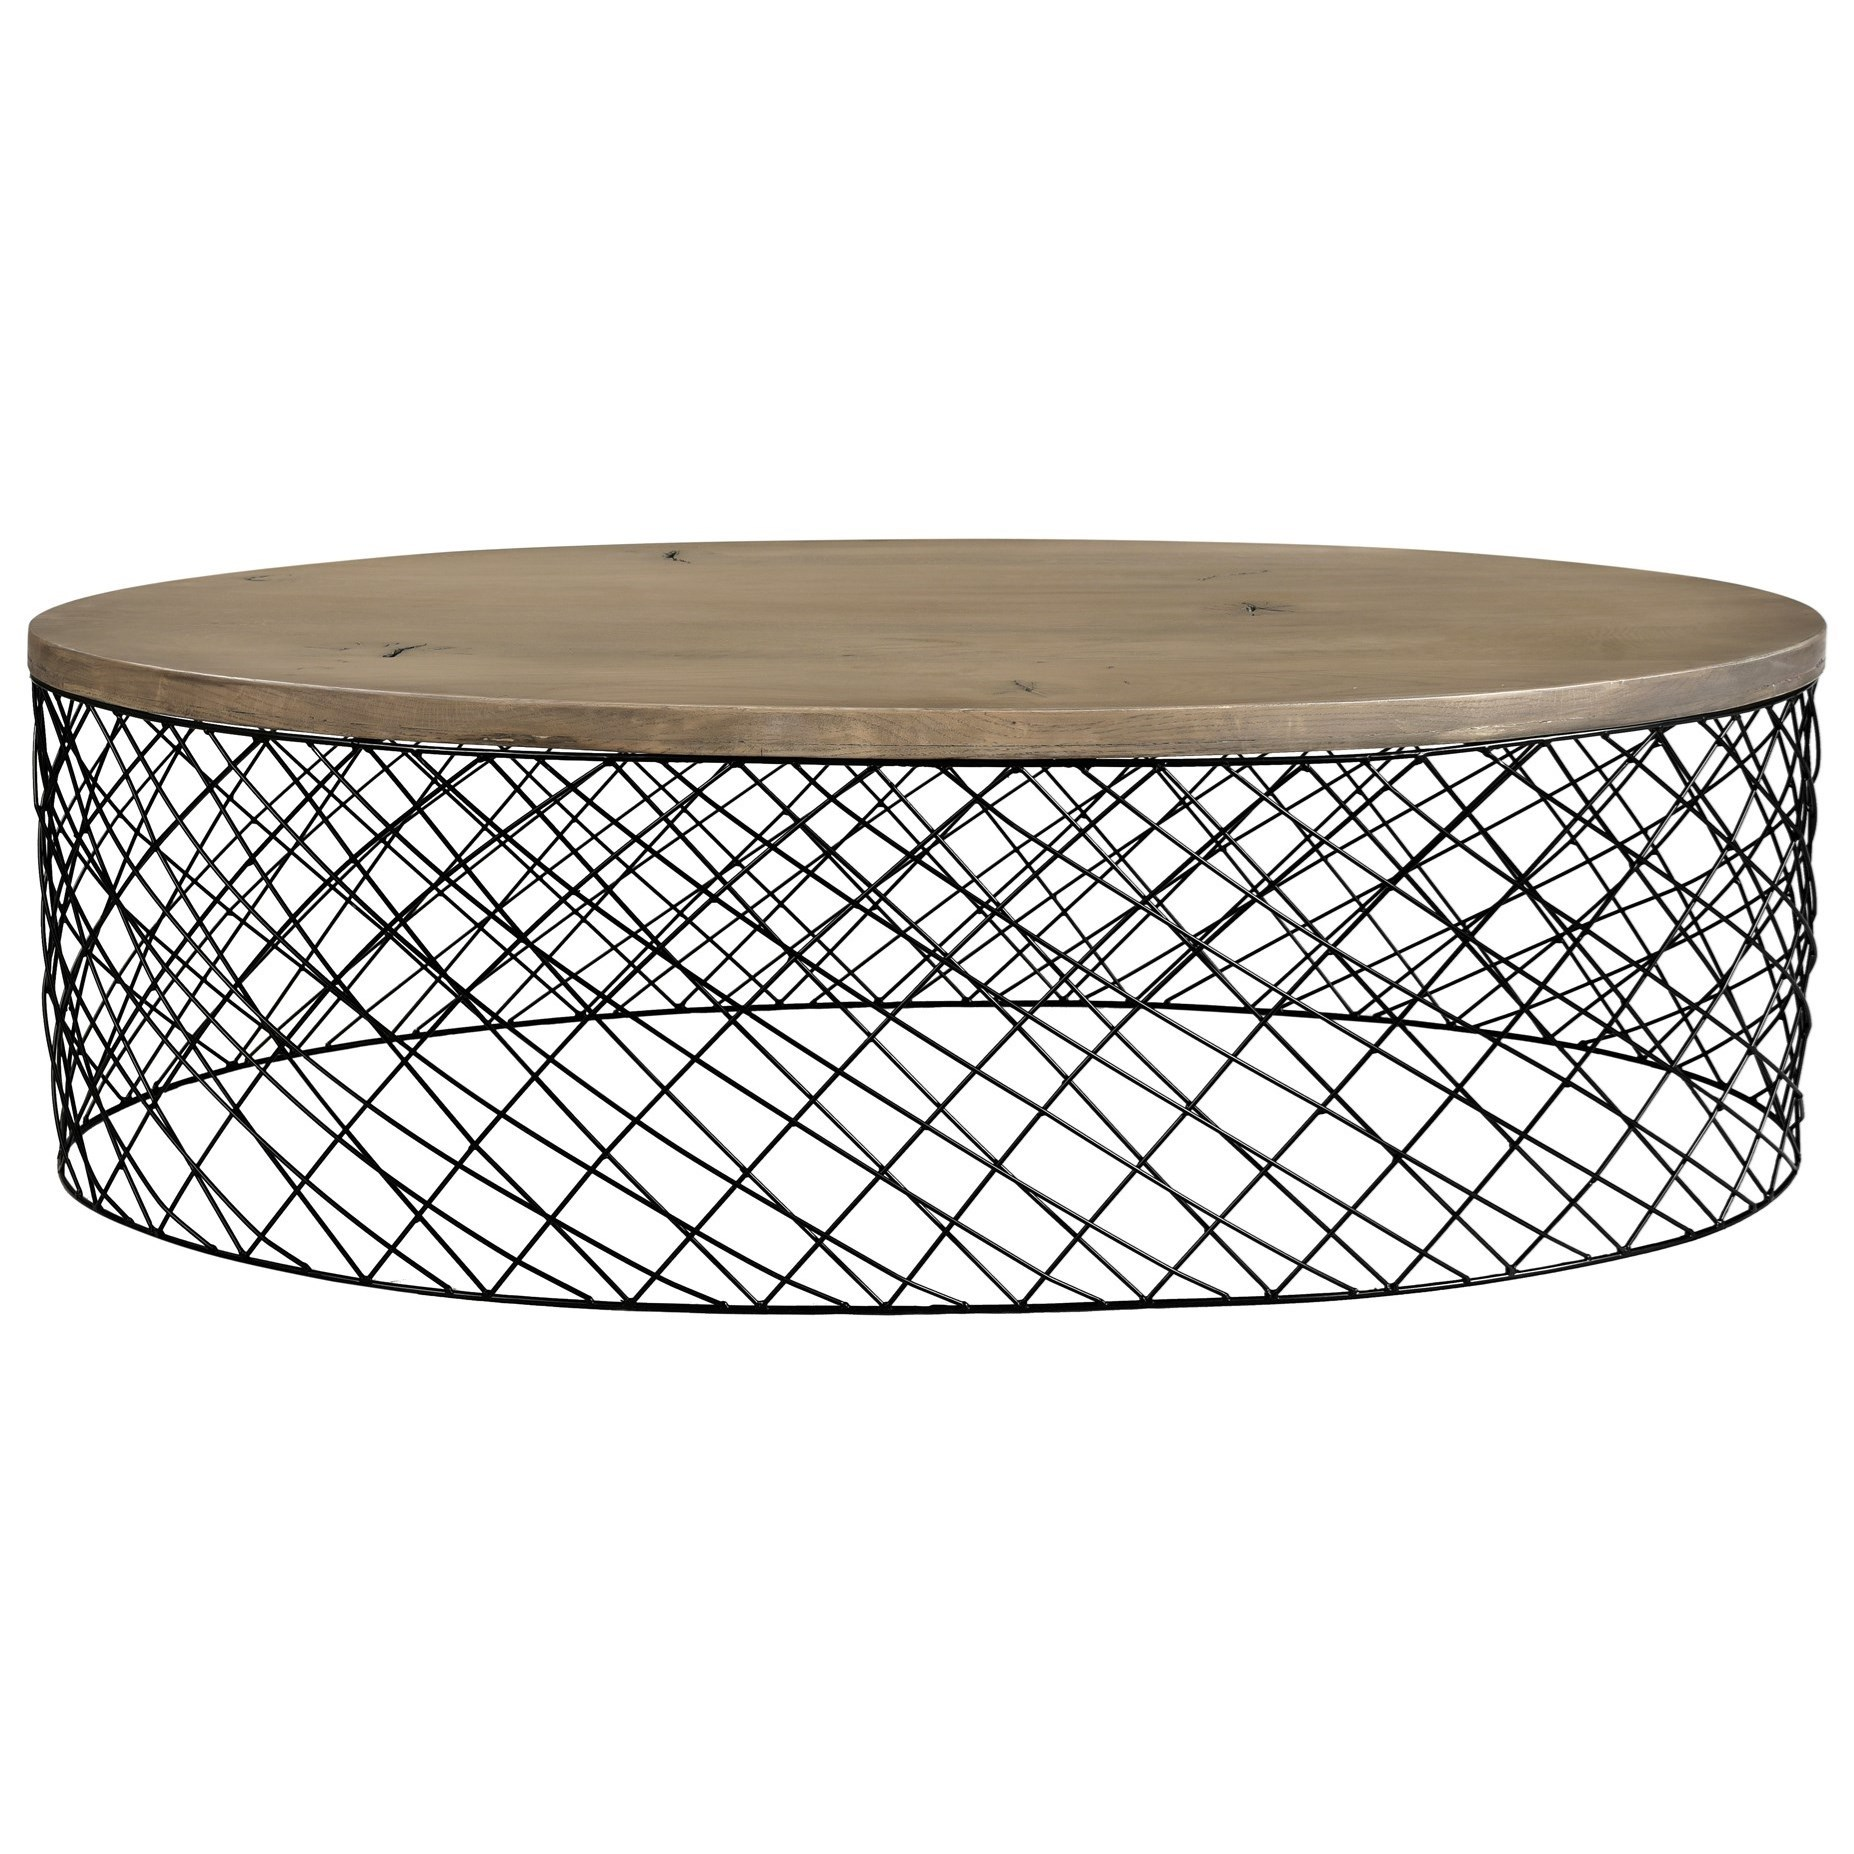 Celeste Coffee Table by Moe's Home Collection at Stoney Creek Furniture